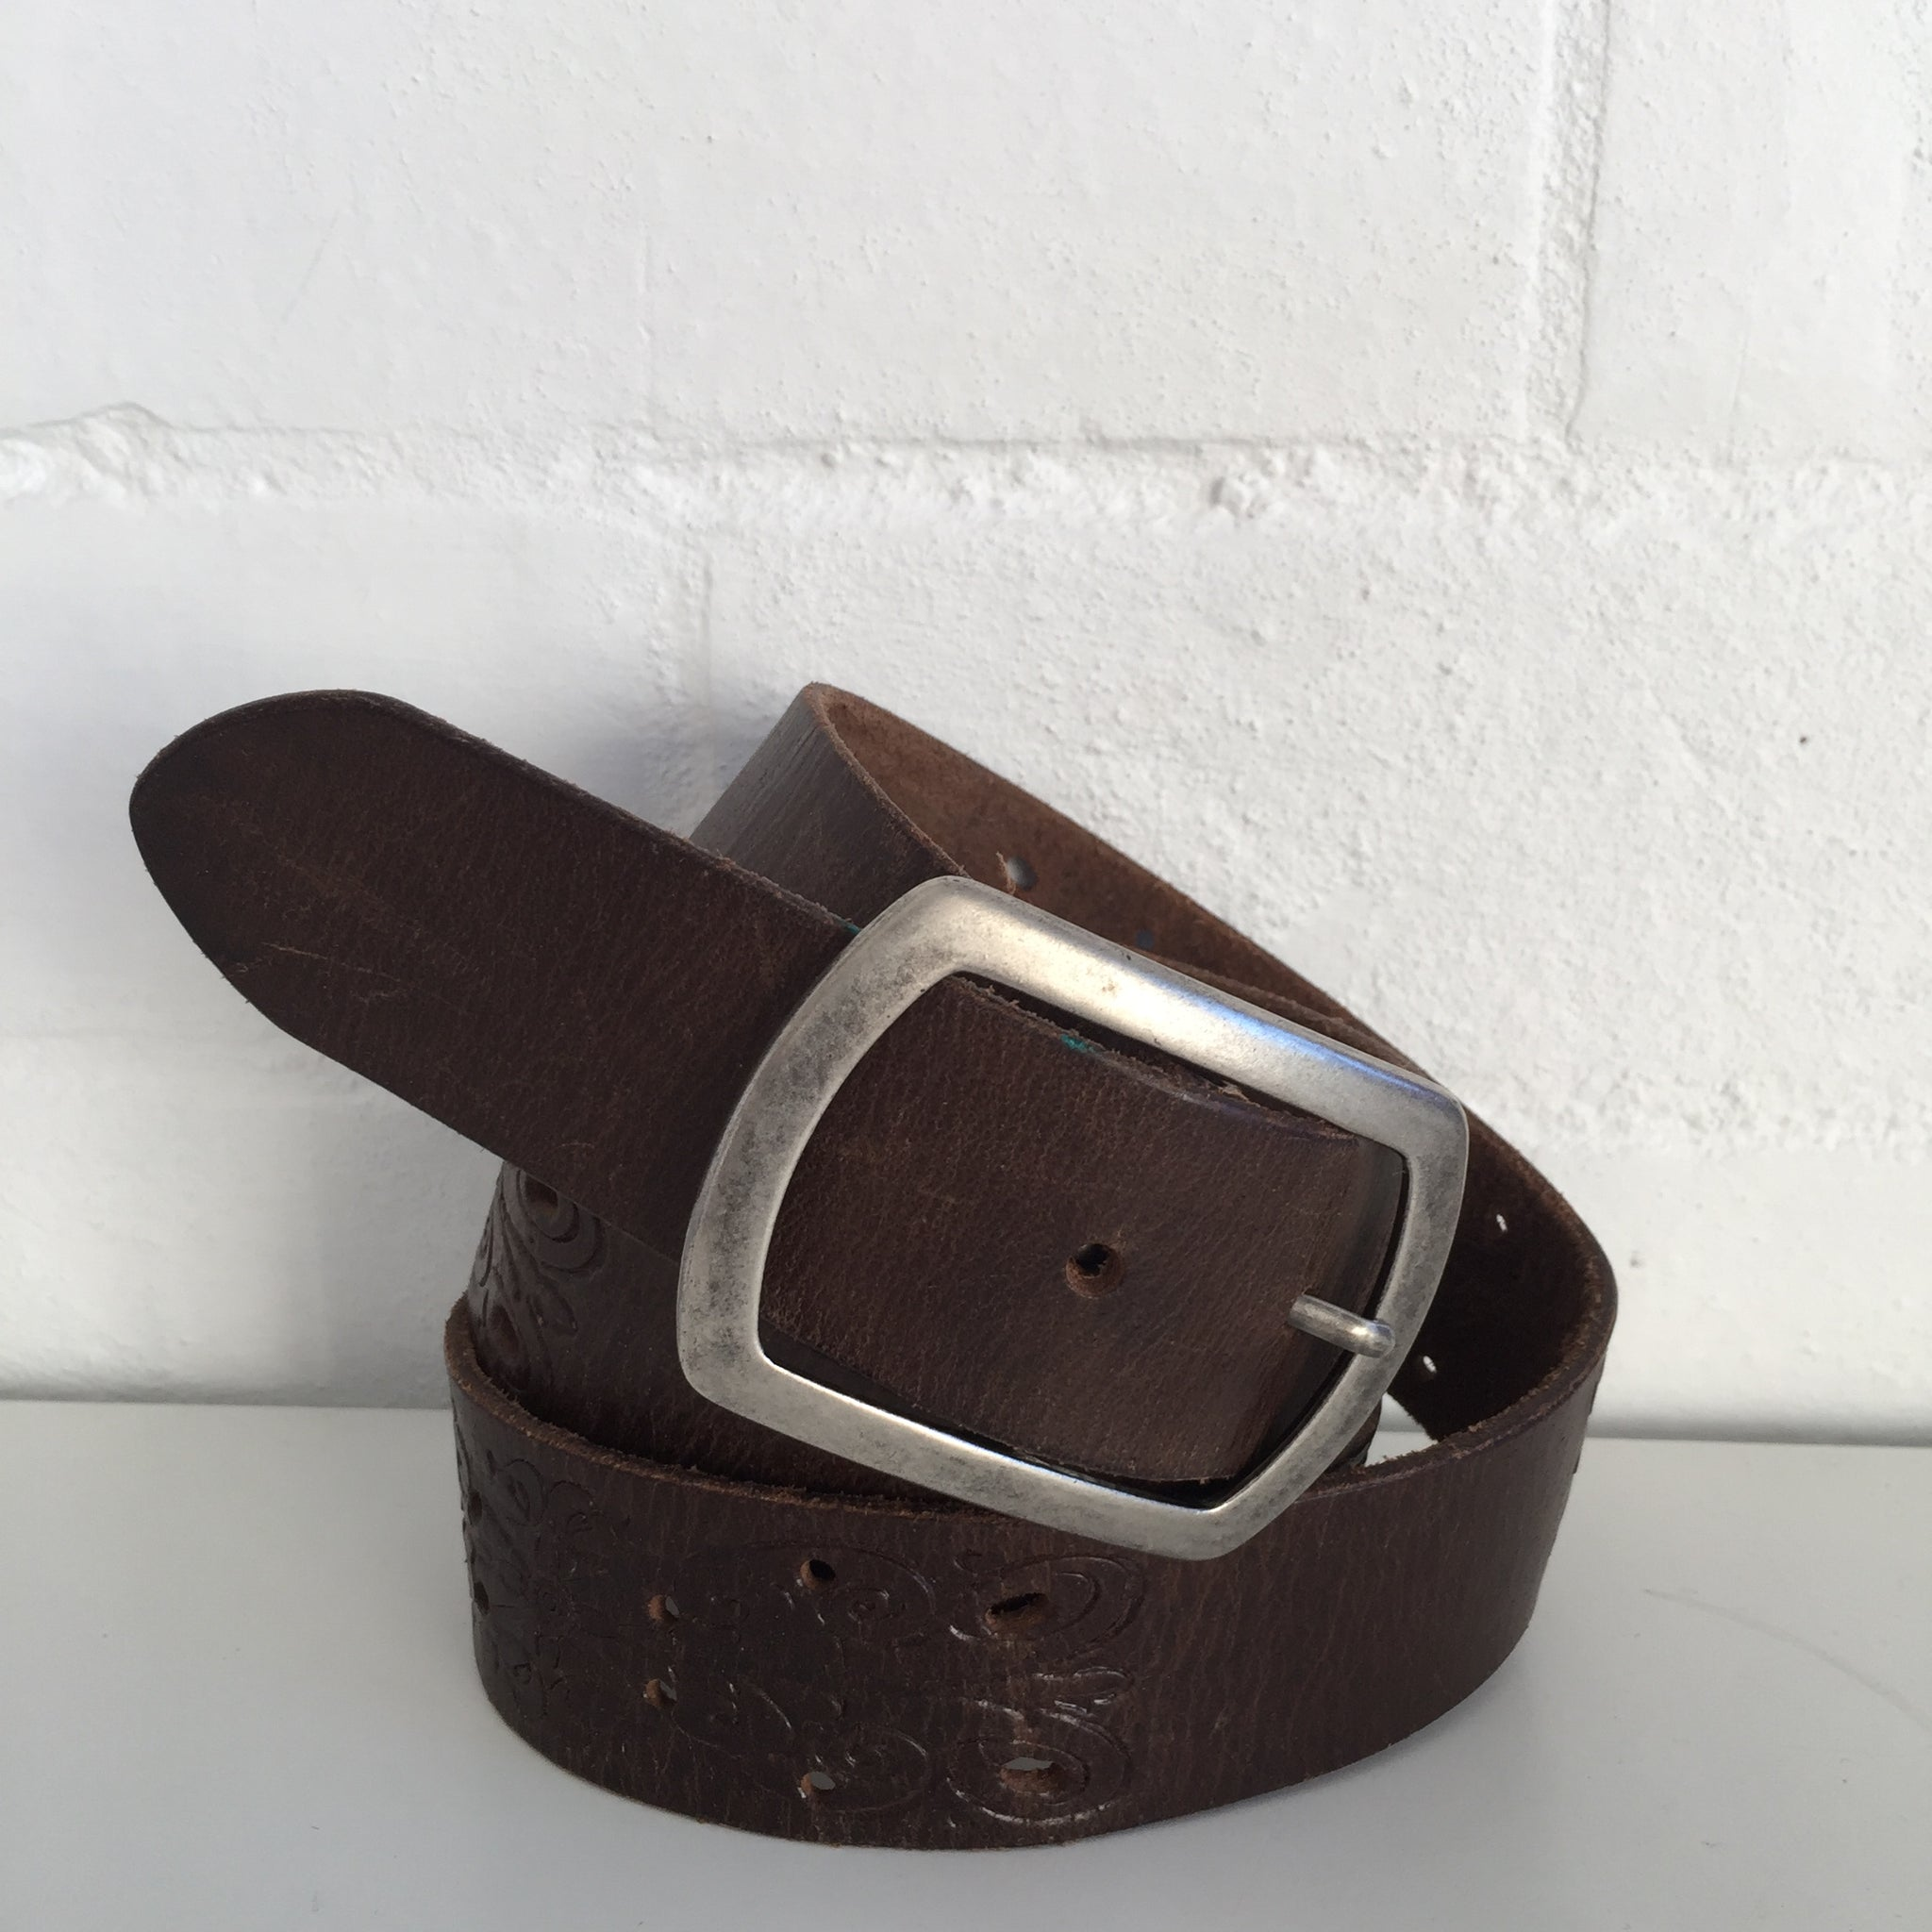 Hippy Festival EMBOSSED Worn RUSTIC BOHO BELT Genuine LEATHER Modern